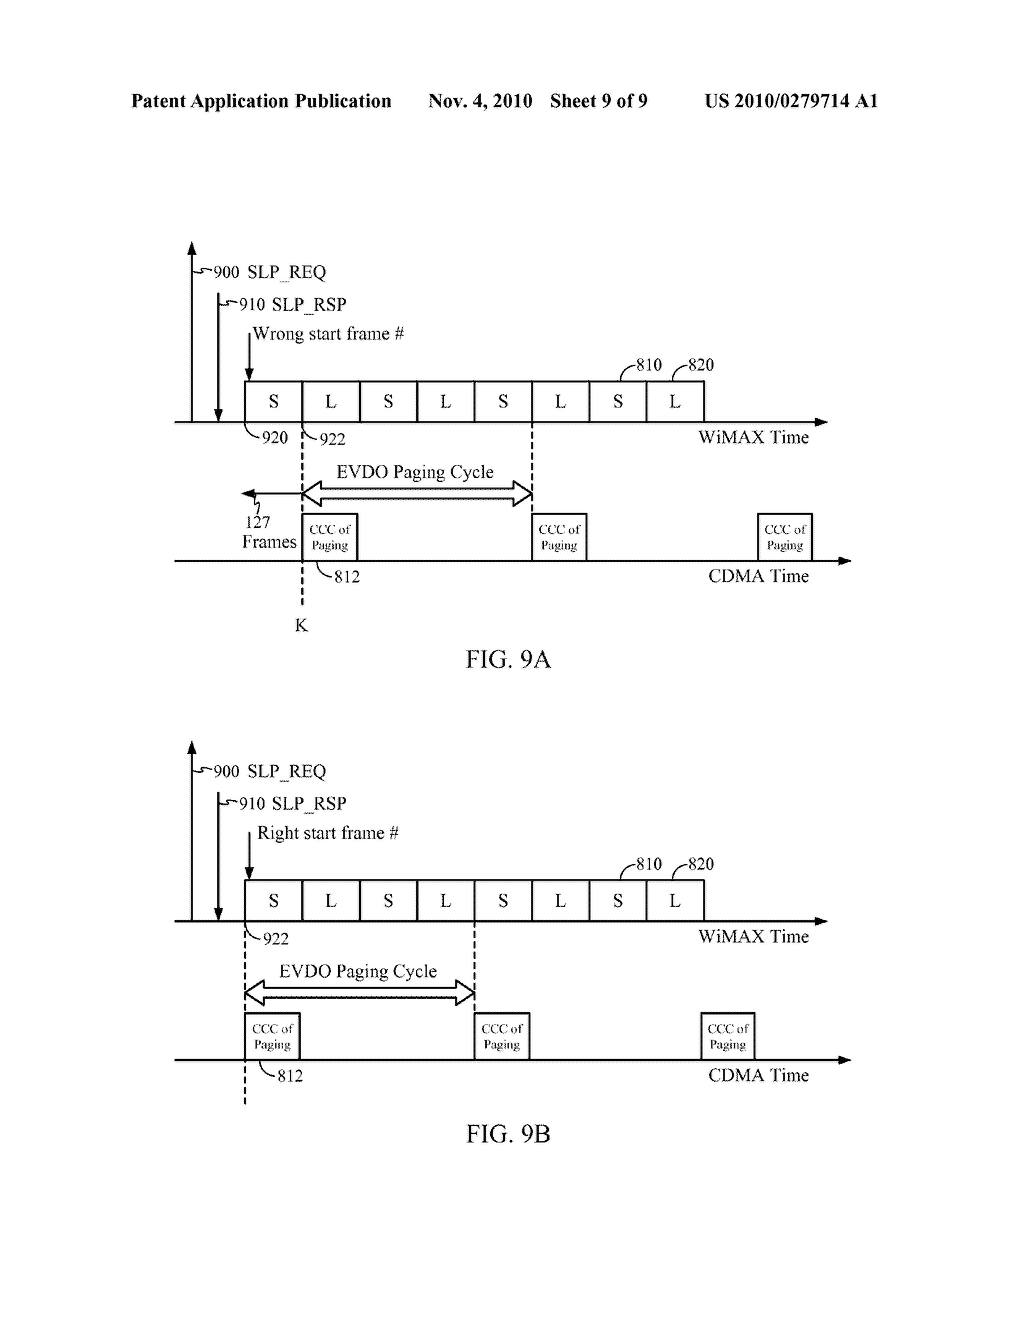 20100279714_10 methods and systems for cdma evdo paging interval alignment with an